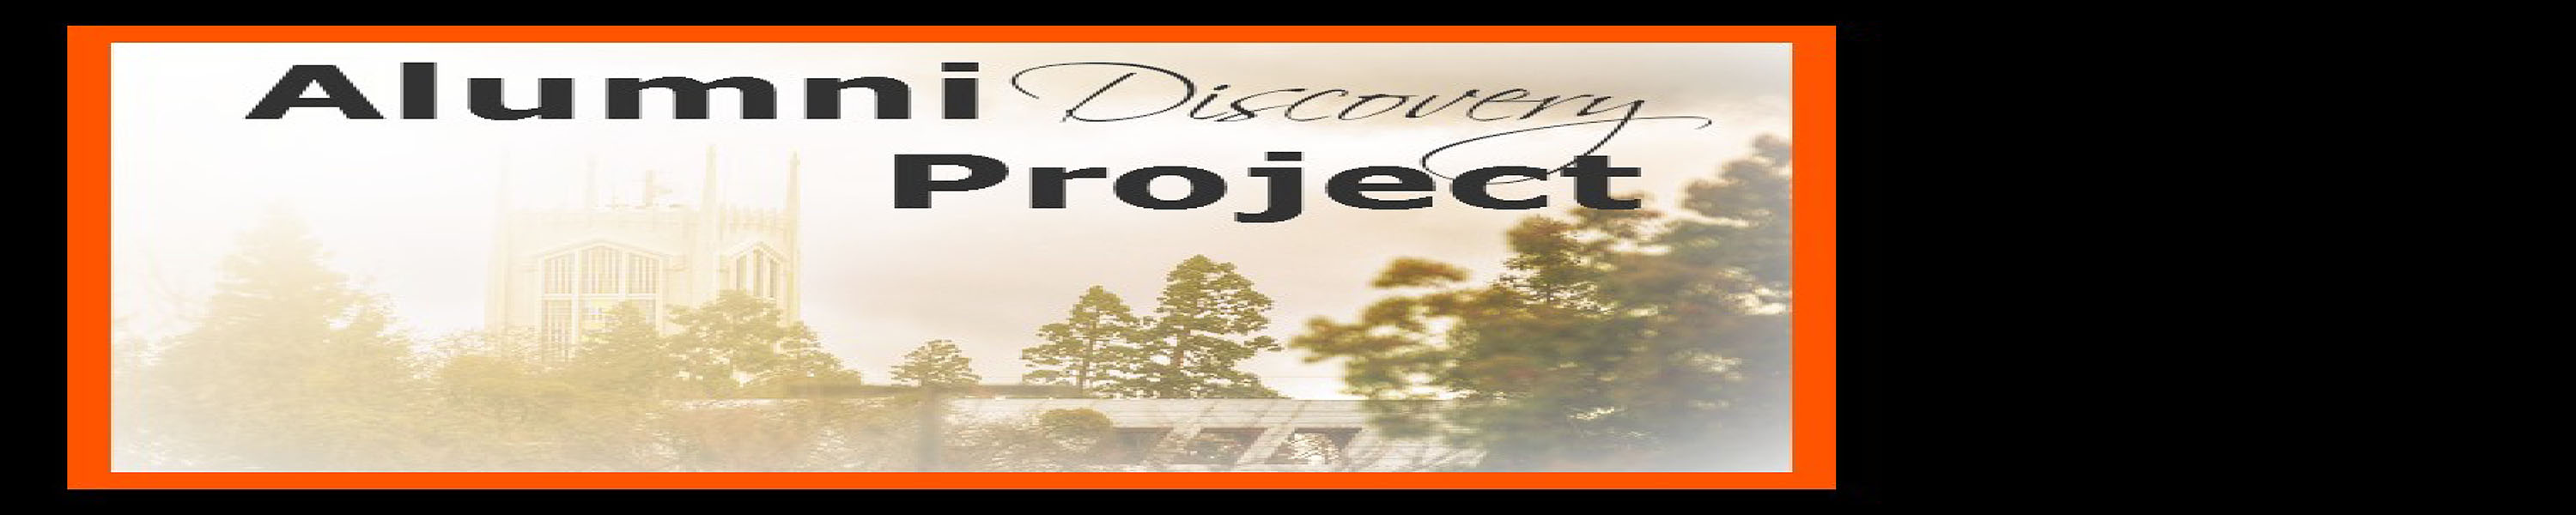 Discovery Project Students Want to Hear from You!